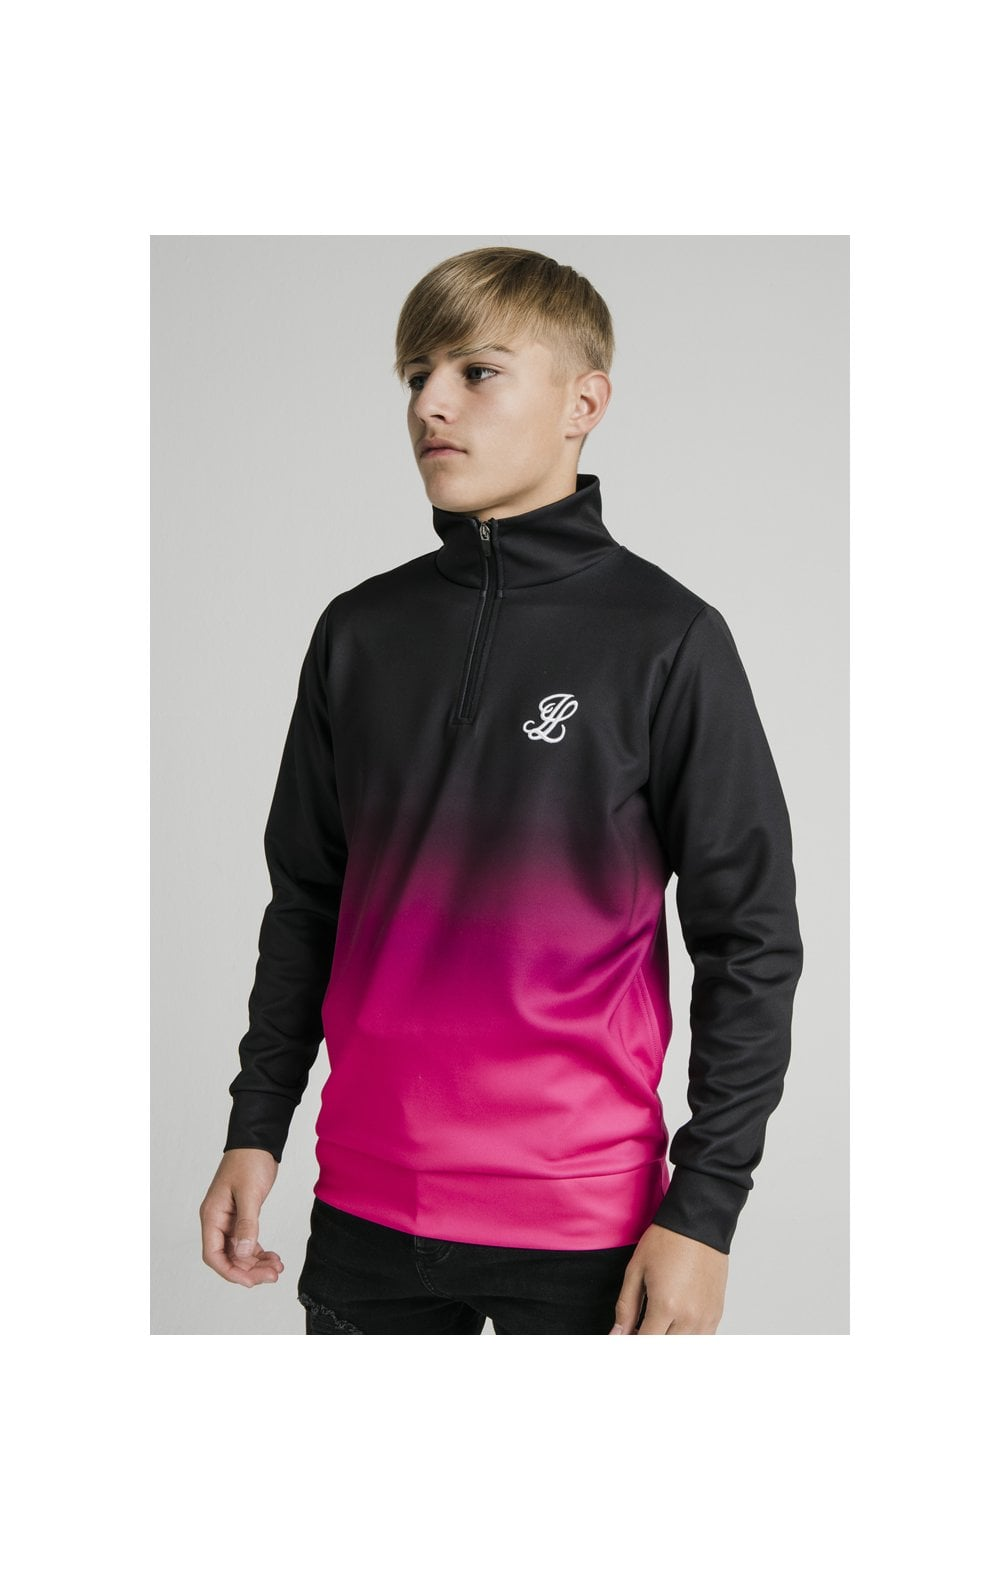 Illusive London Funnel Neck 1/4 Zip Hoodie - Black & Pink (1)